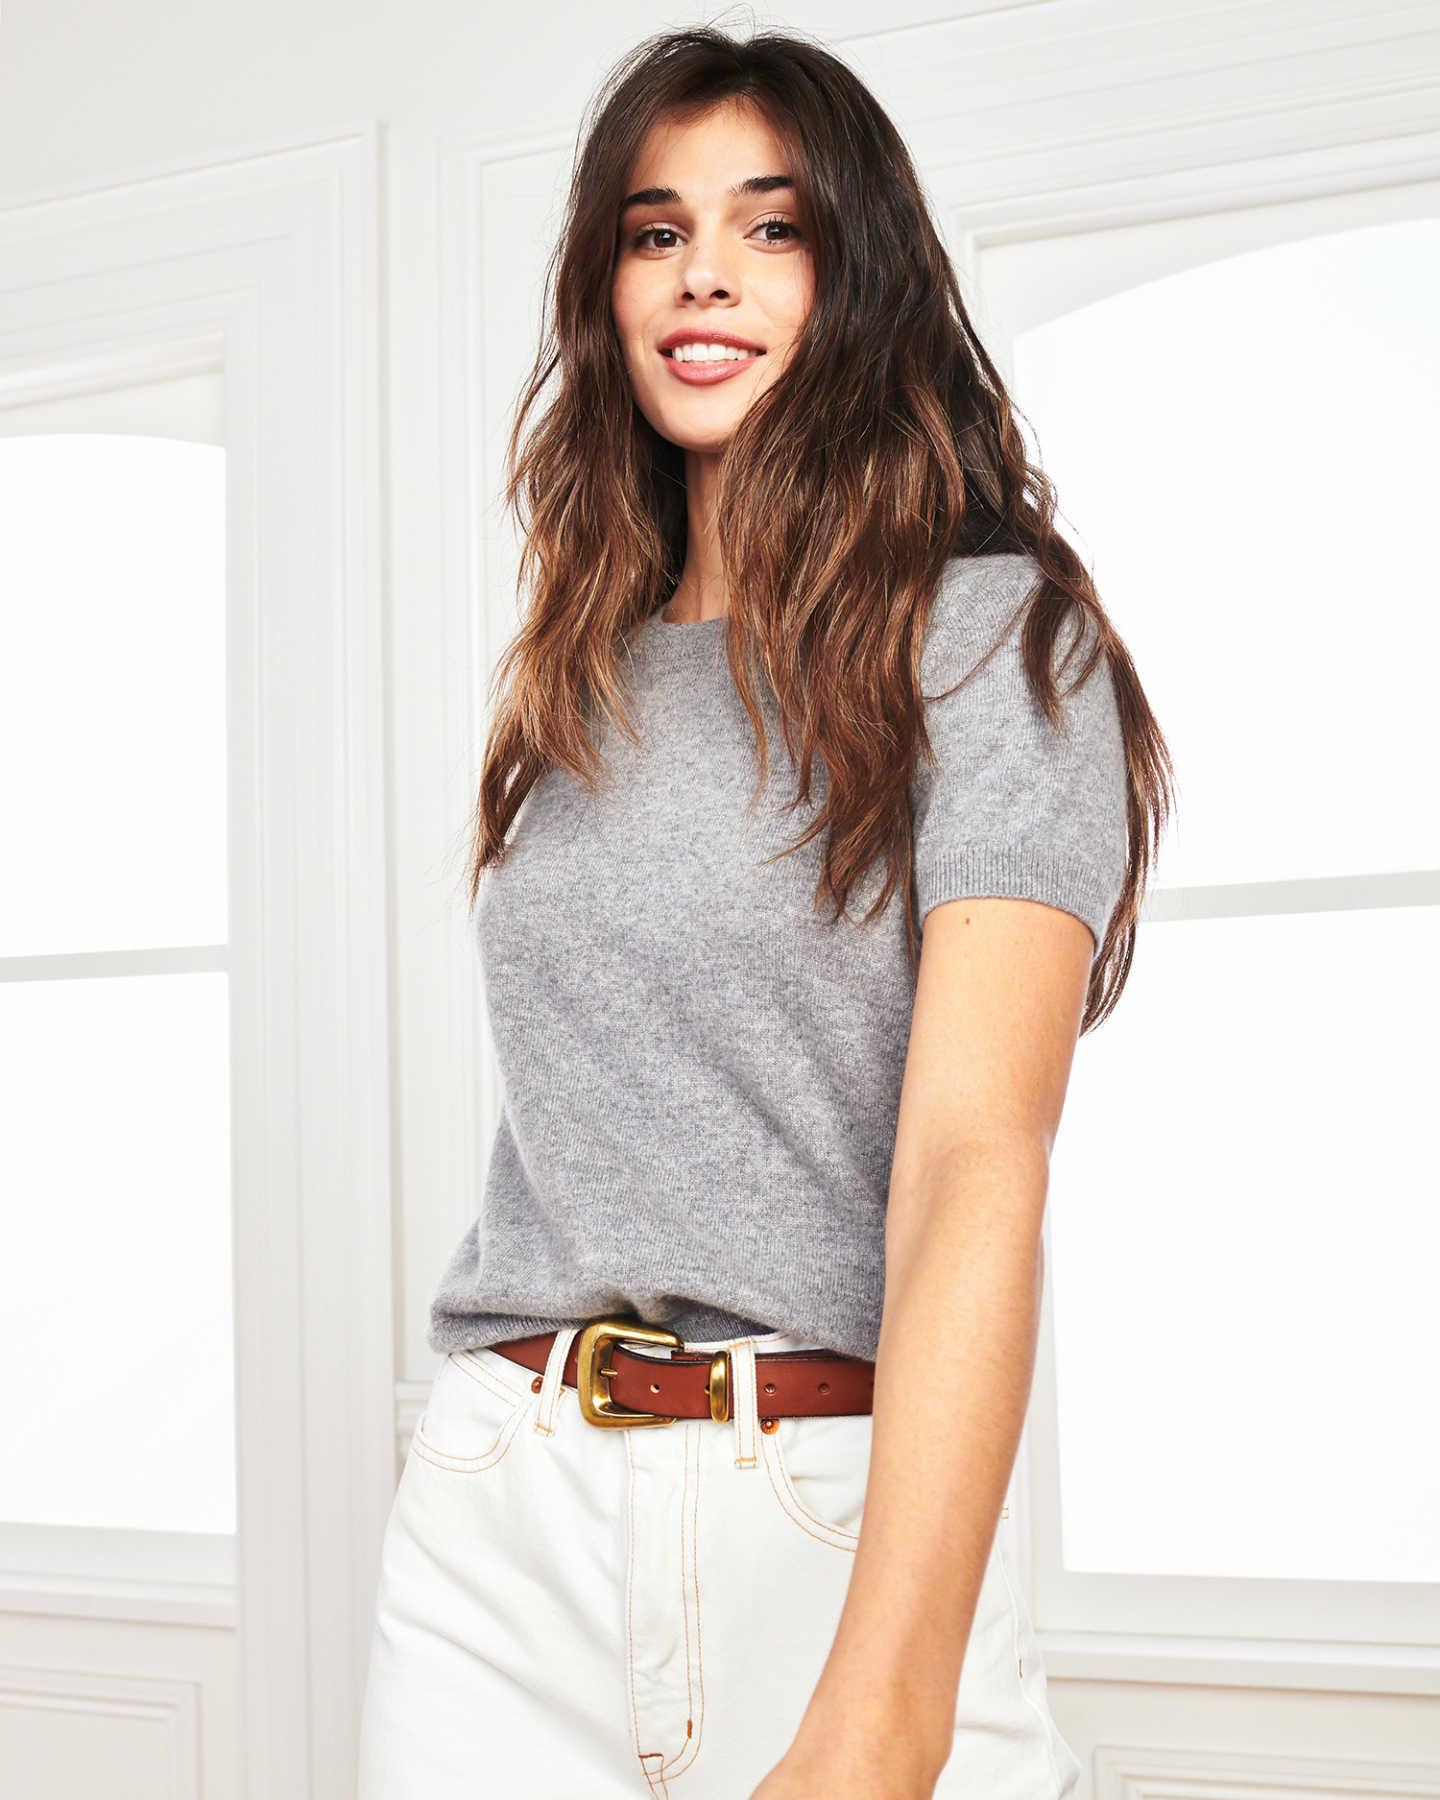 woman wearing grey cashmere tee and short sleeve cashmere sweater posing